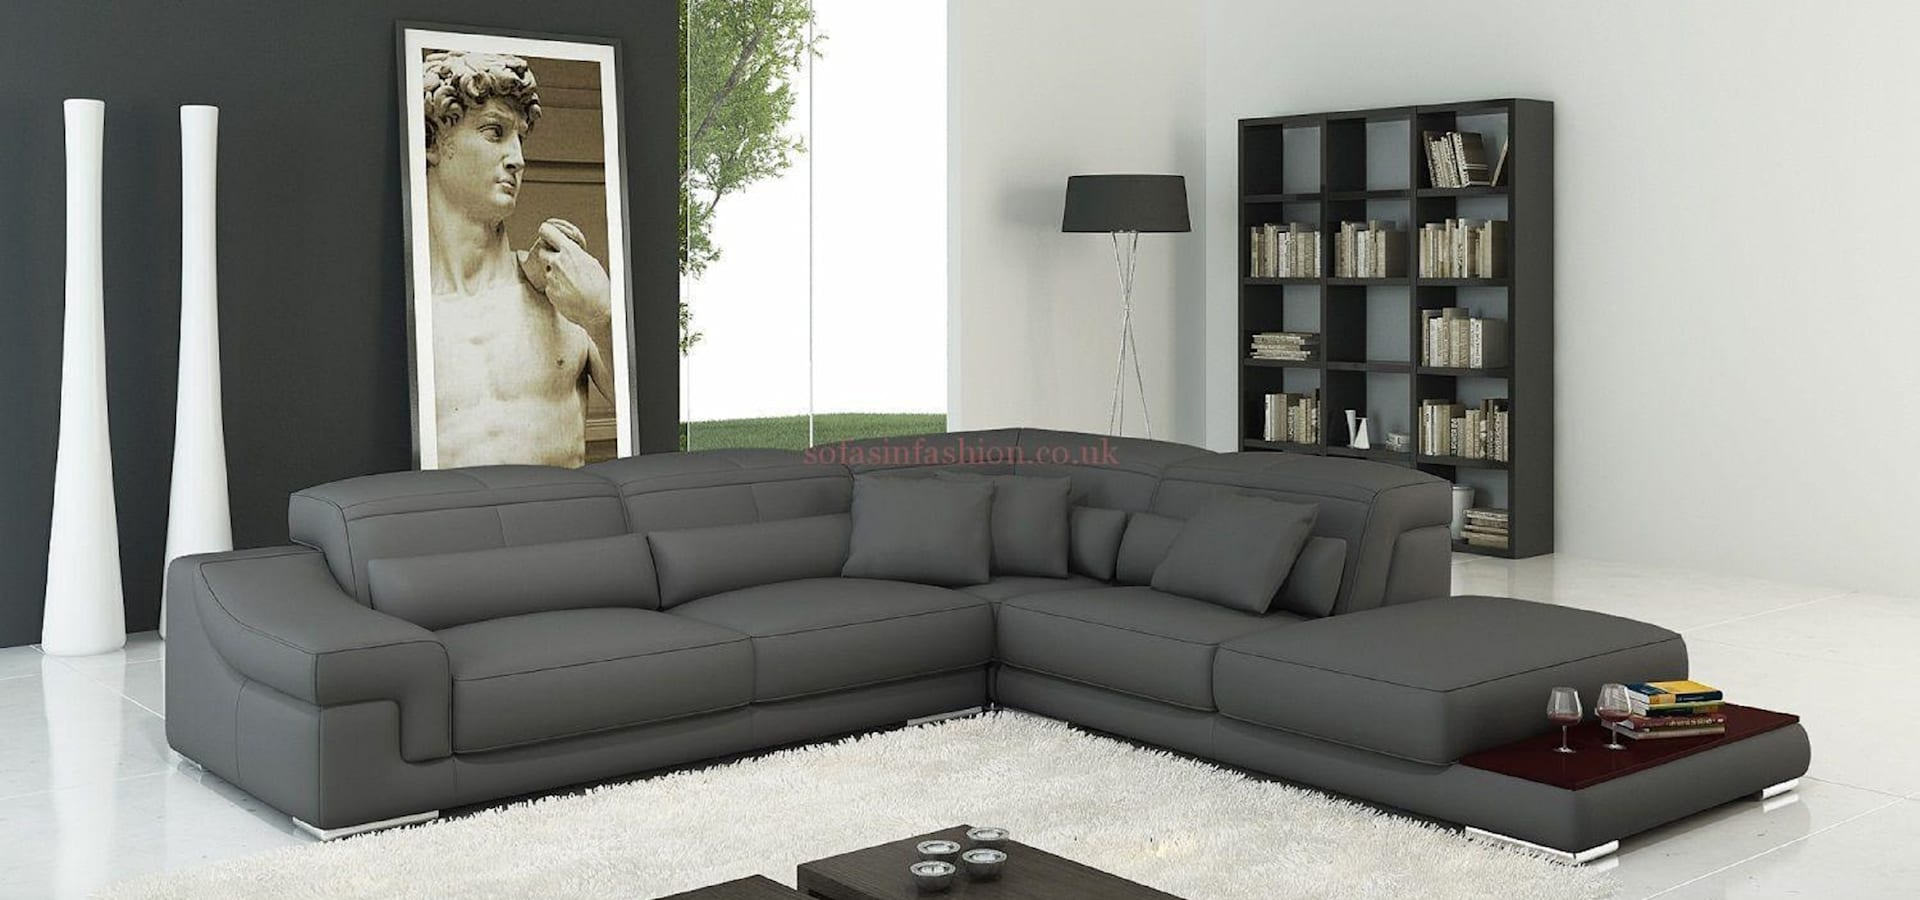 Sofas In Fashion